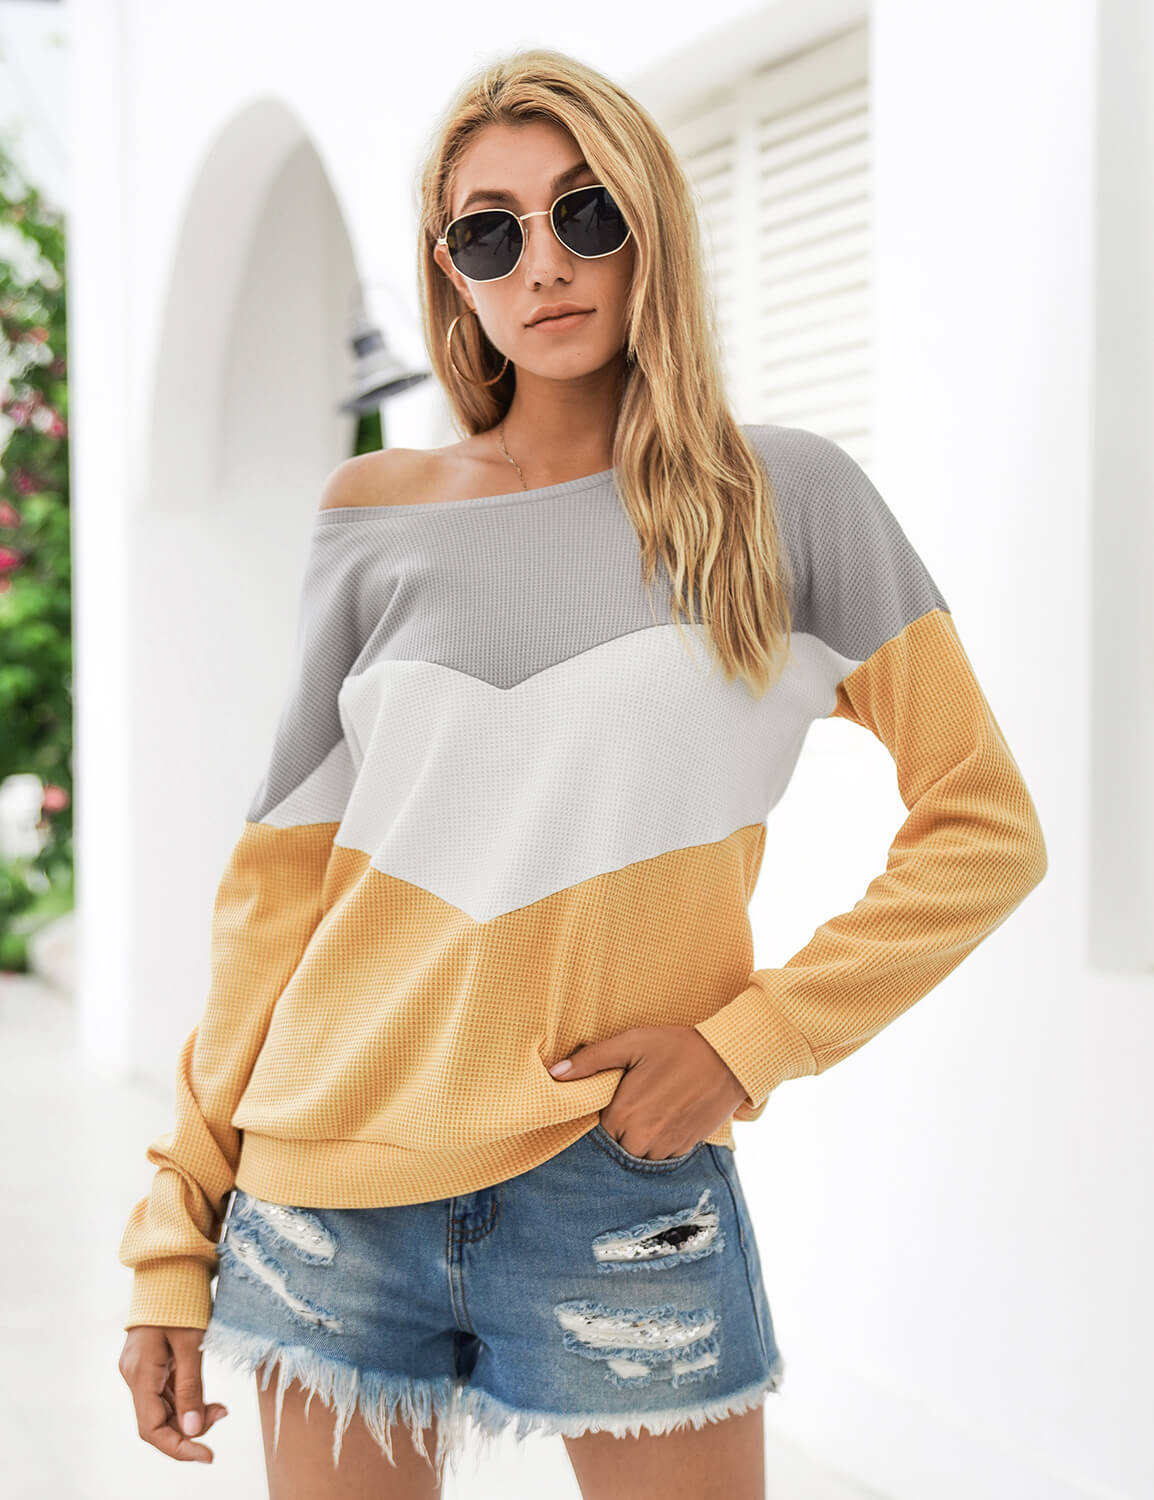 Blooming Jelly_Color Block Waffle Long Sleeve T-Shirt_Contrast Color_293053_20_Stylish Women Casual Outfits_Tops_T-Shirt